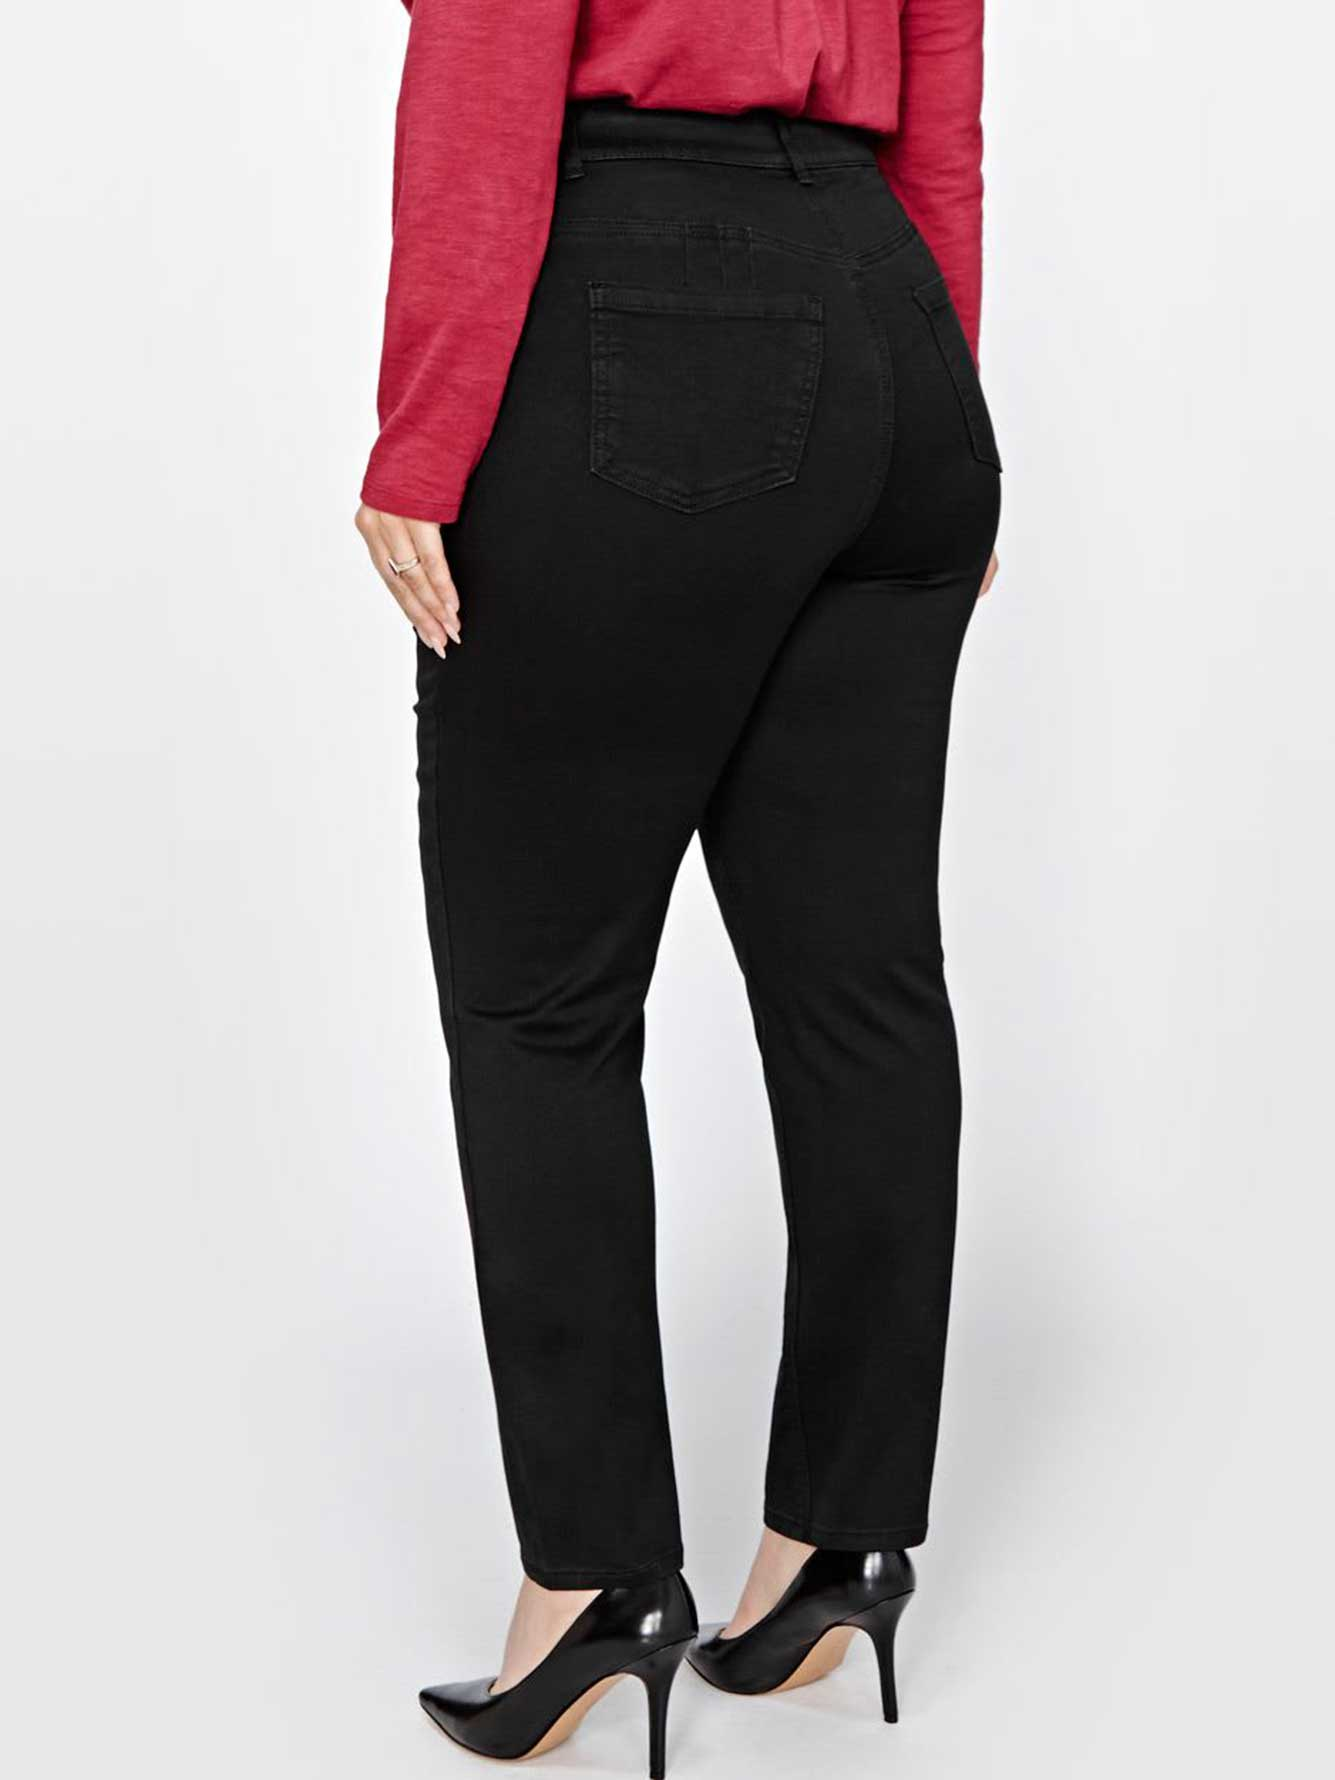 L&L Curvy Super Soft Jegging